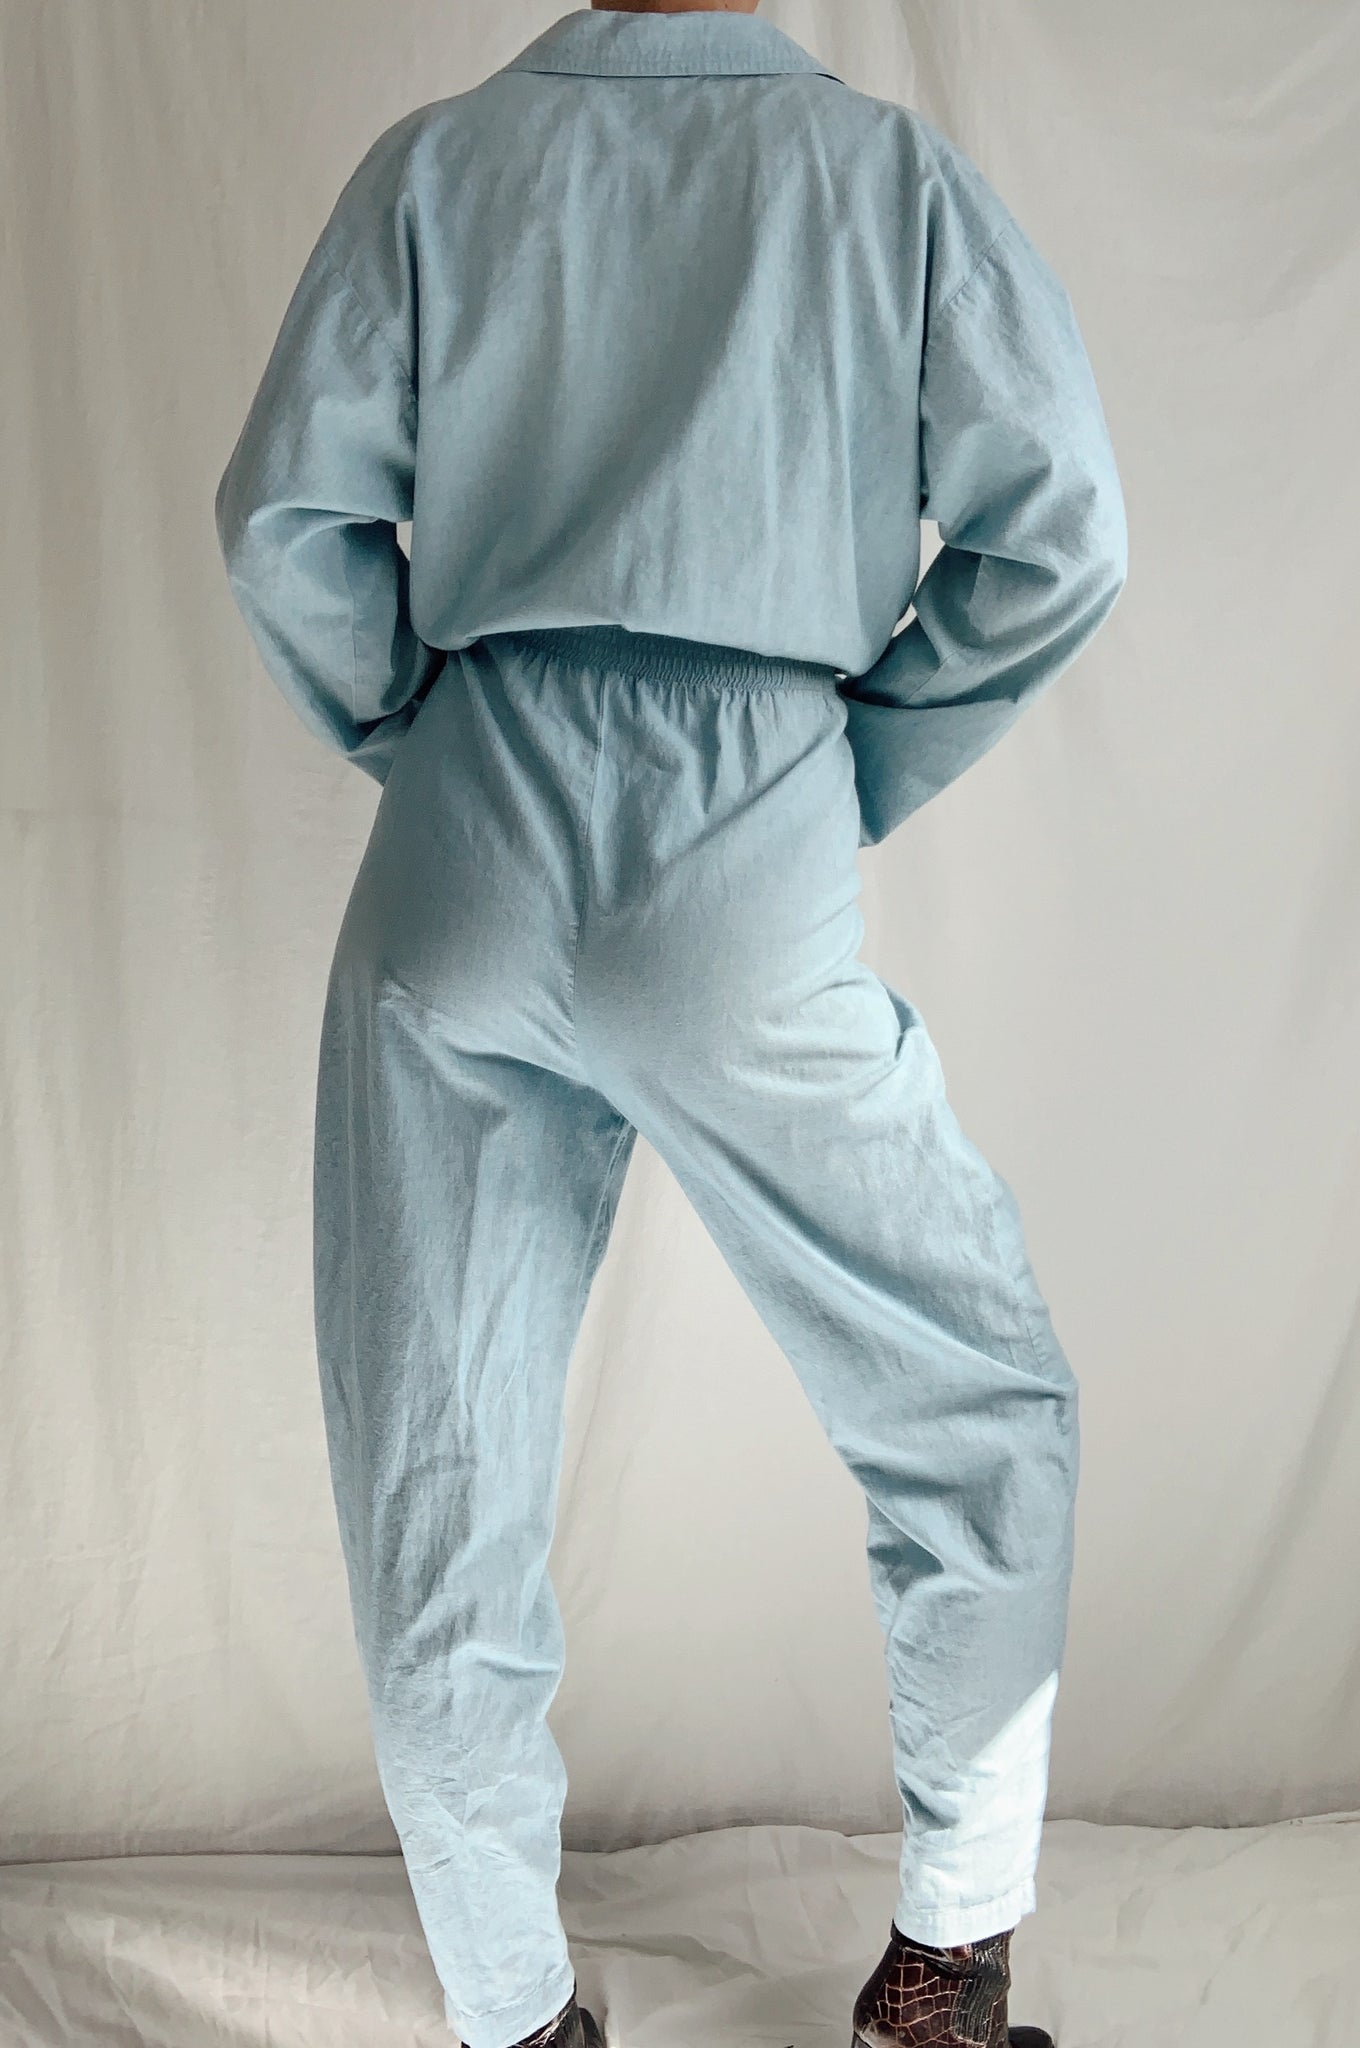 80's Cotton Coverall Jumpsuit (M)